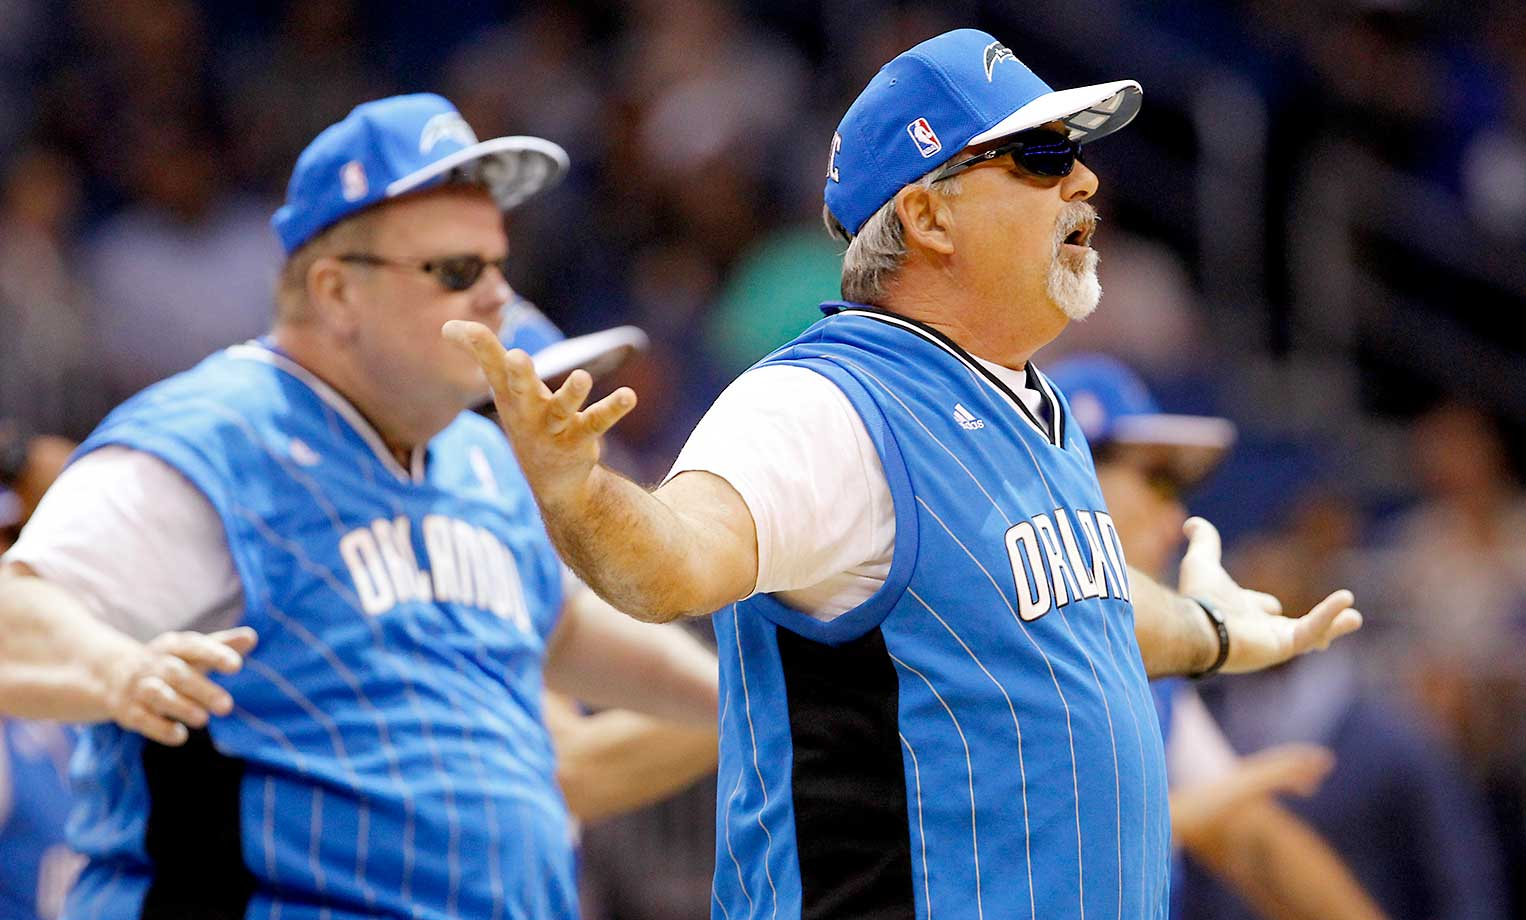 The fathers of the Orlando Magic cheerleaders perform during the game between Orlando and Philadelphia.